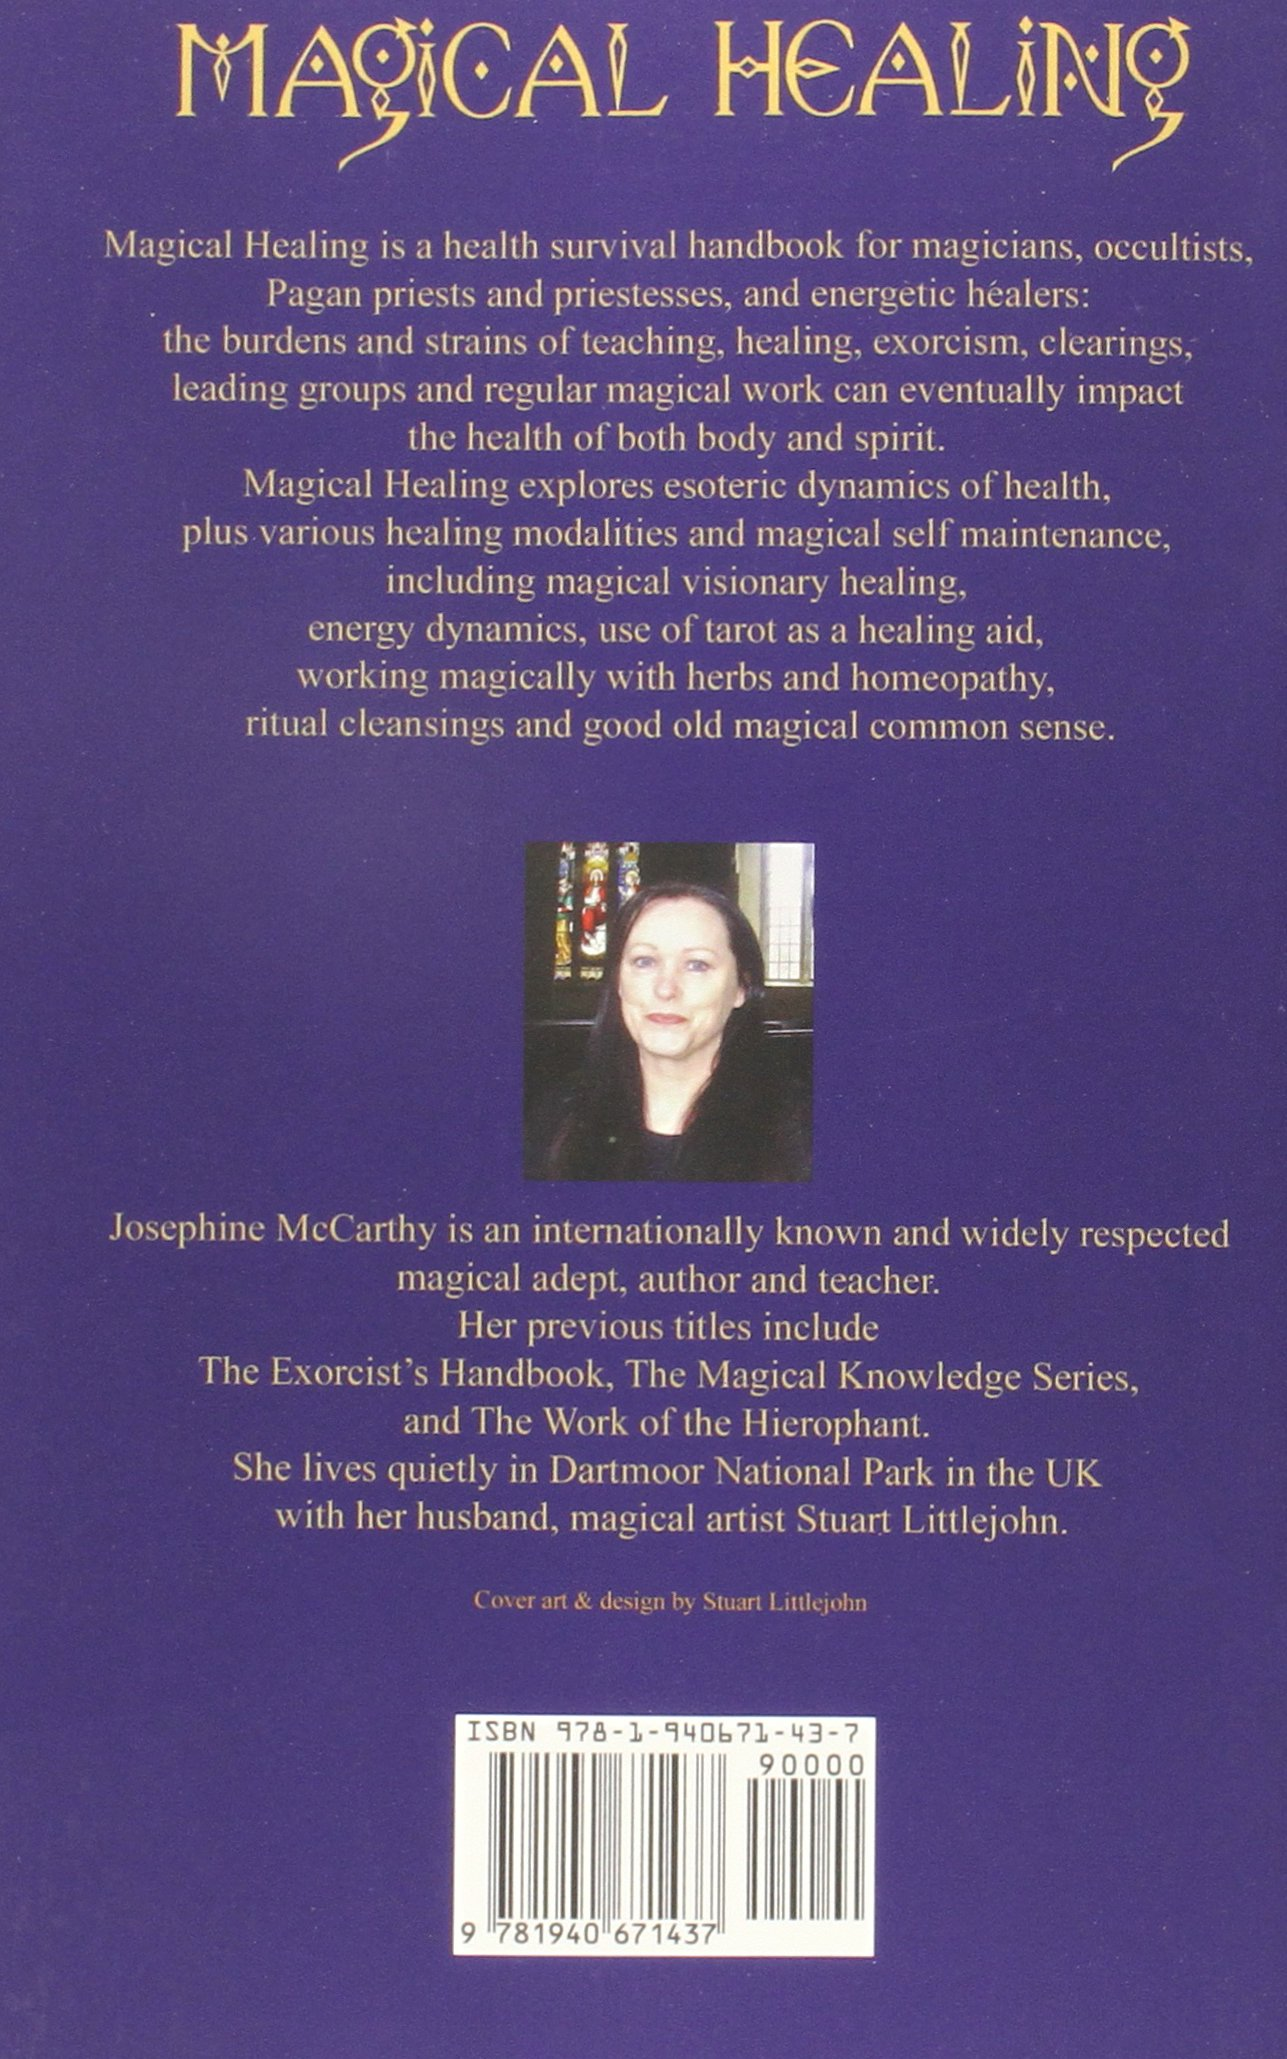 Amazon: Magical Healing: A Health Survival Guide For Magicians And  Healers (9781940671437): Josephine Mccarthy: Books